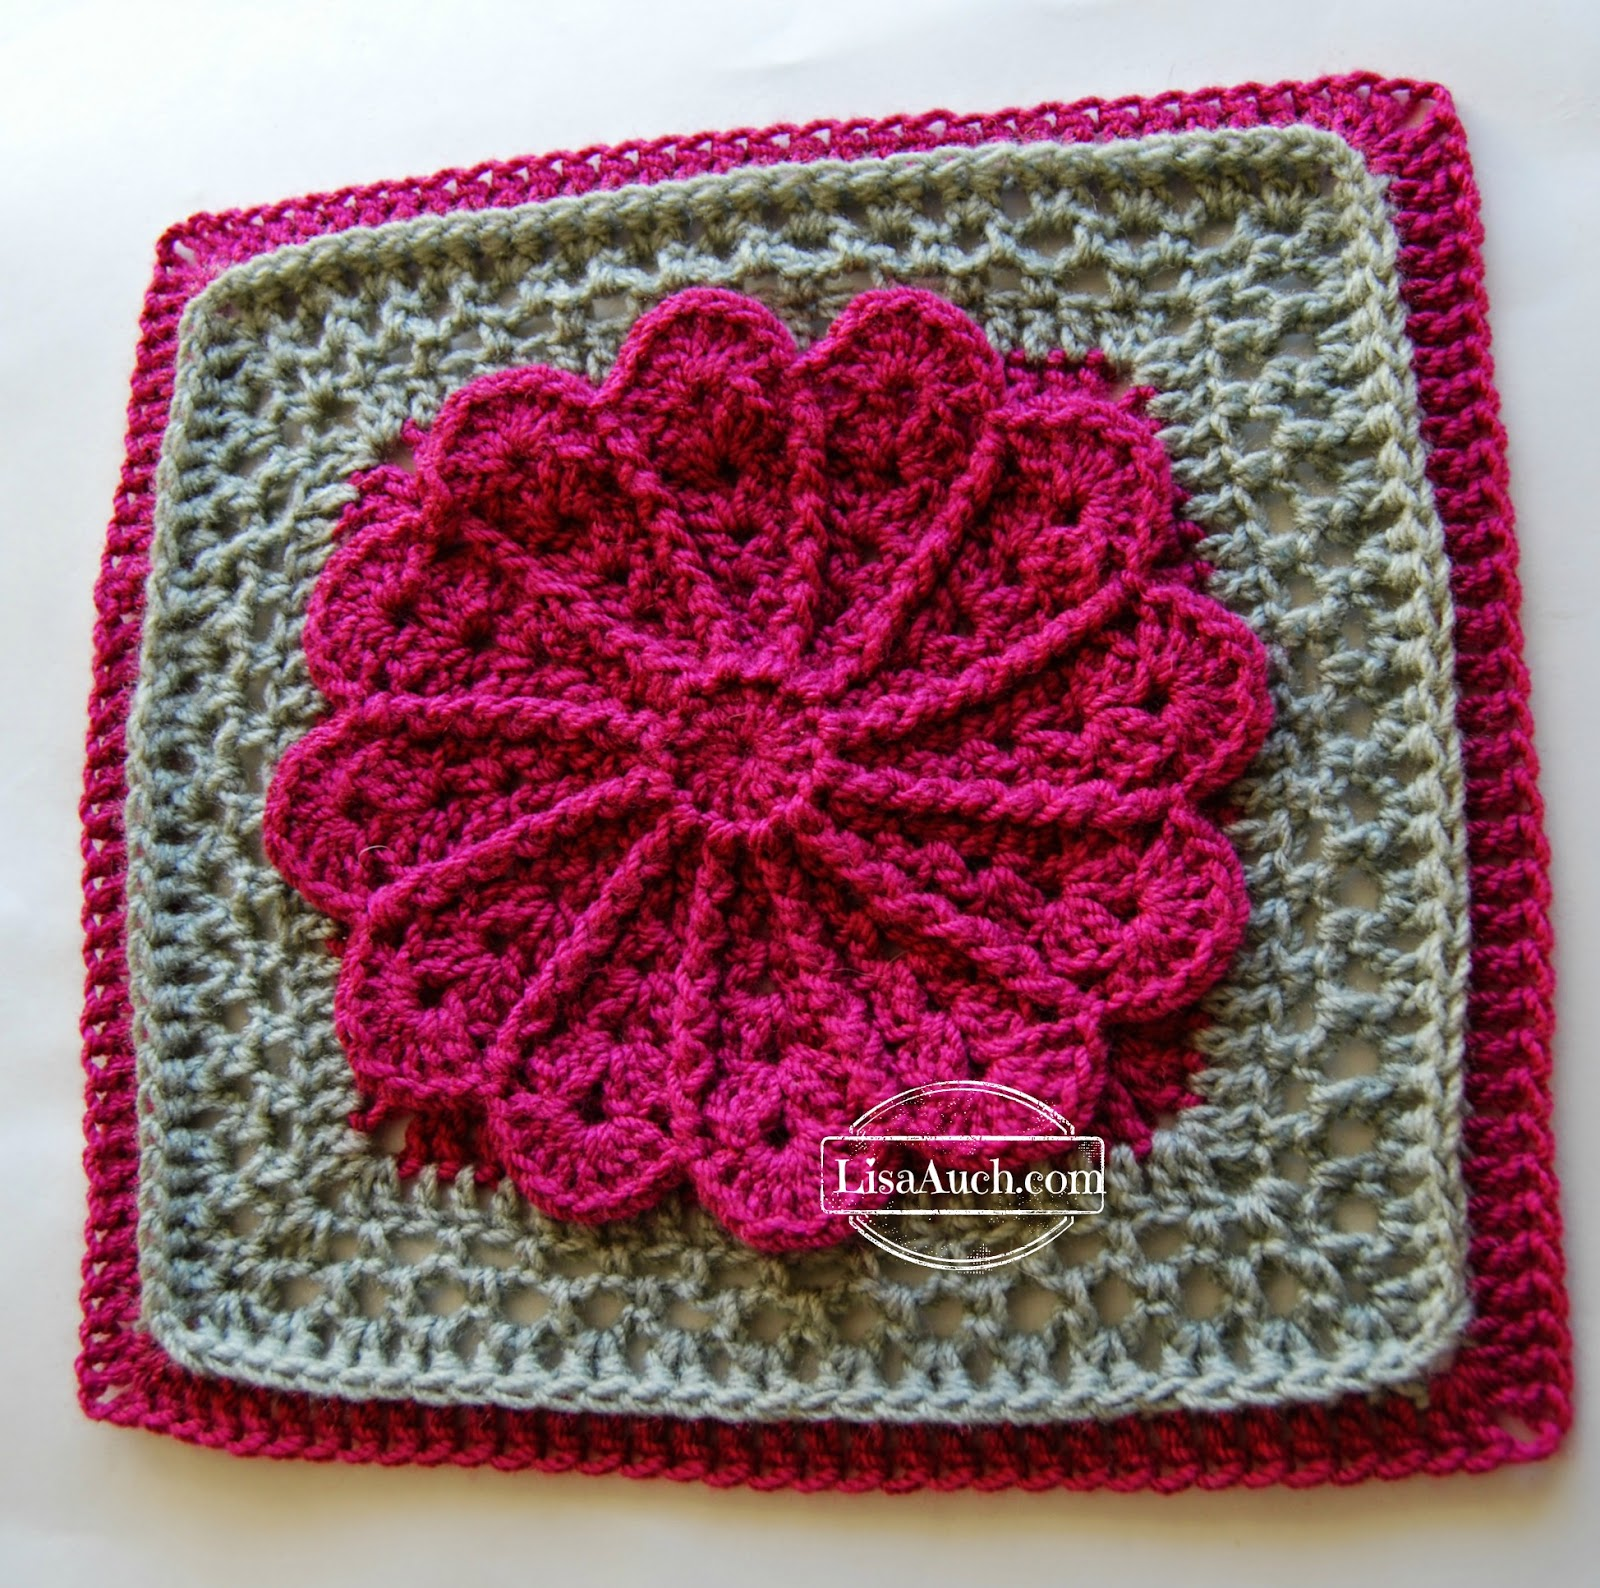 12 inch Afghan Square Photo Tutorial Pane in My Dahlia | Free ...